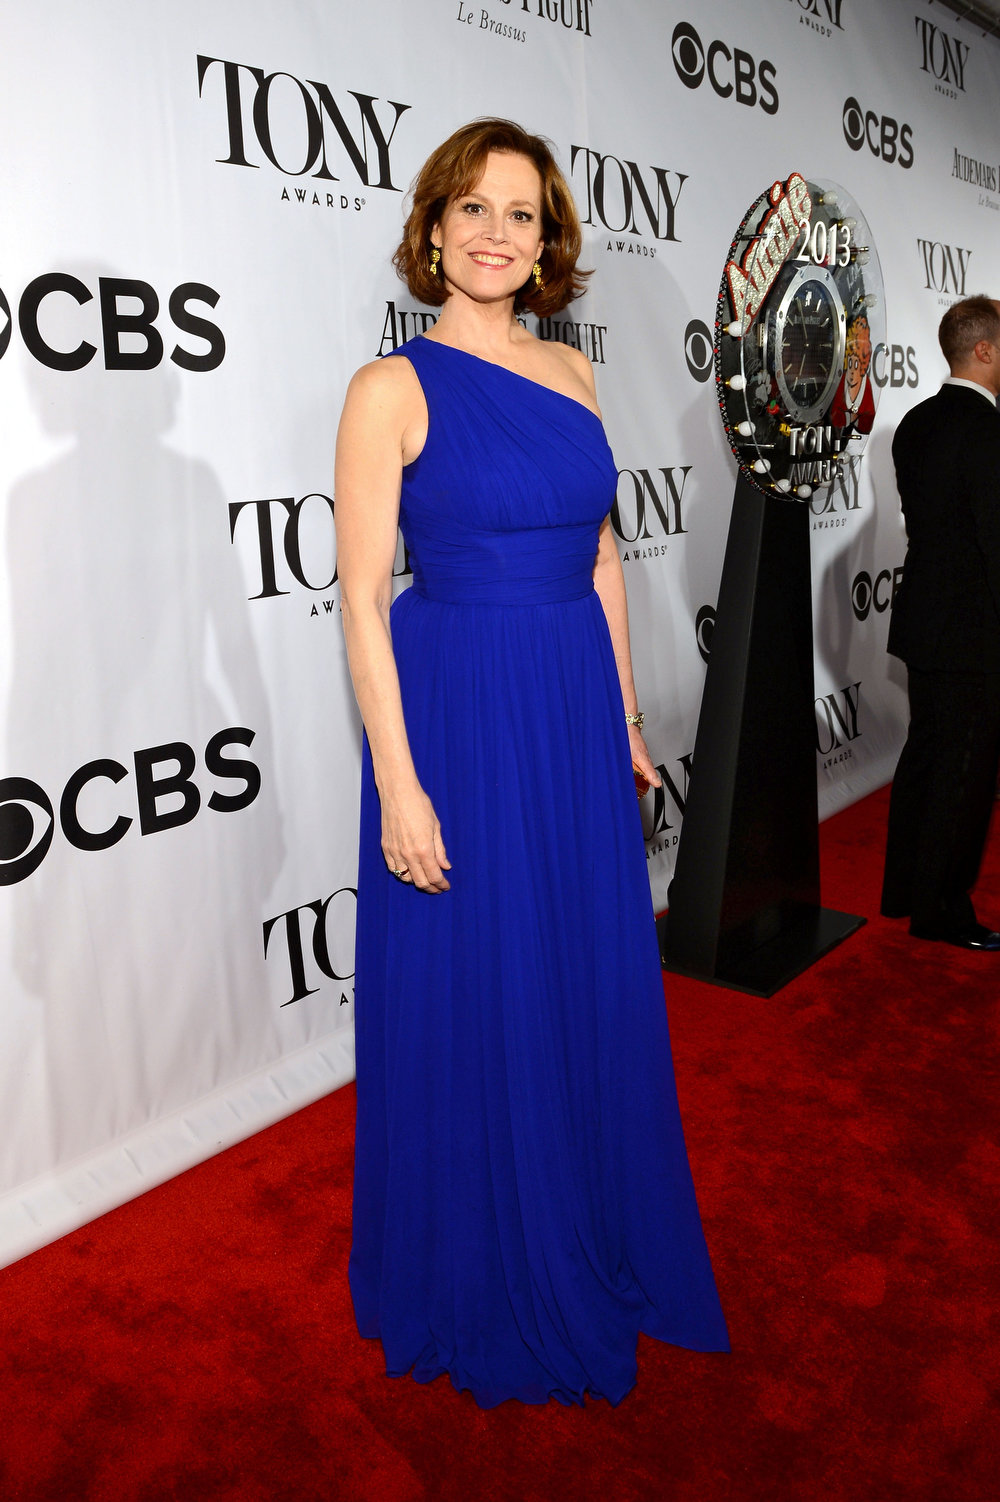 . Actress Sigourney Weaver attends The 67th Annual Tony Awards at Radio City Music Hall on June 9, 2013 in New York City.  (Photo by Larry Busacca/Getty Images for Tony Awards Productions)